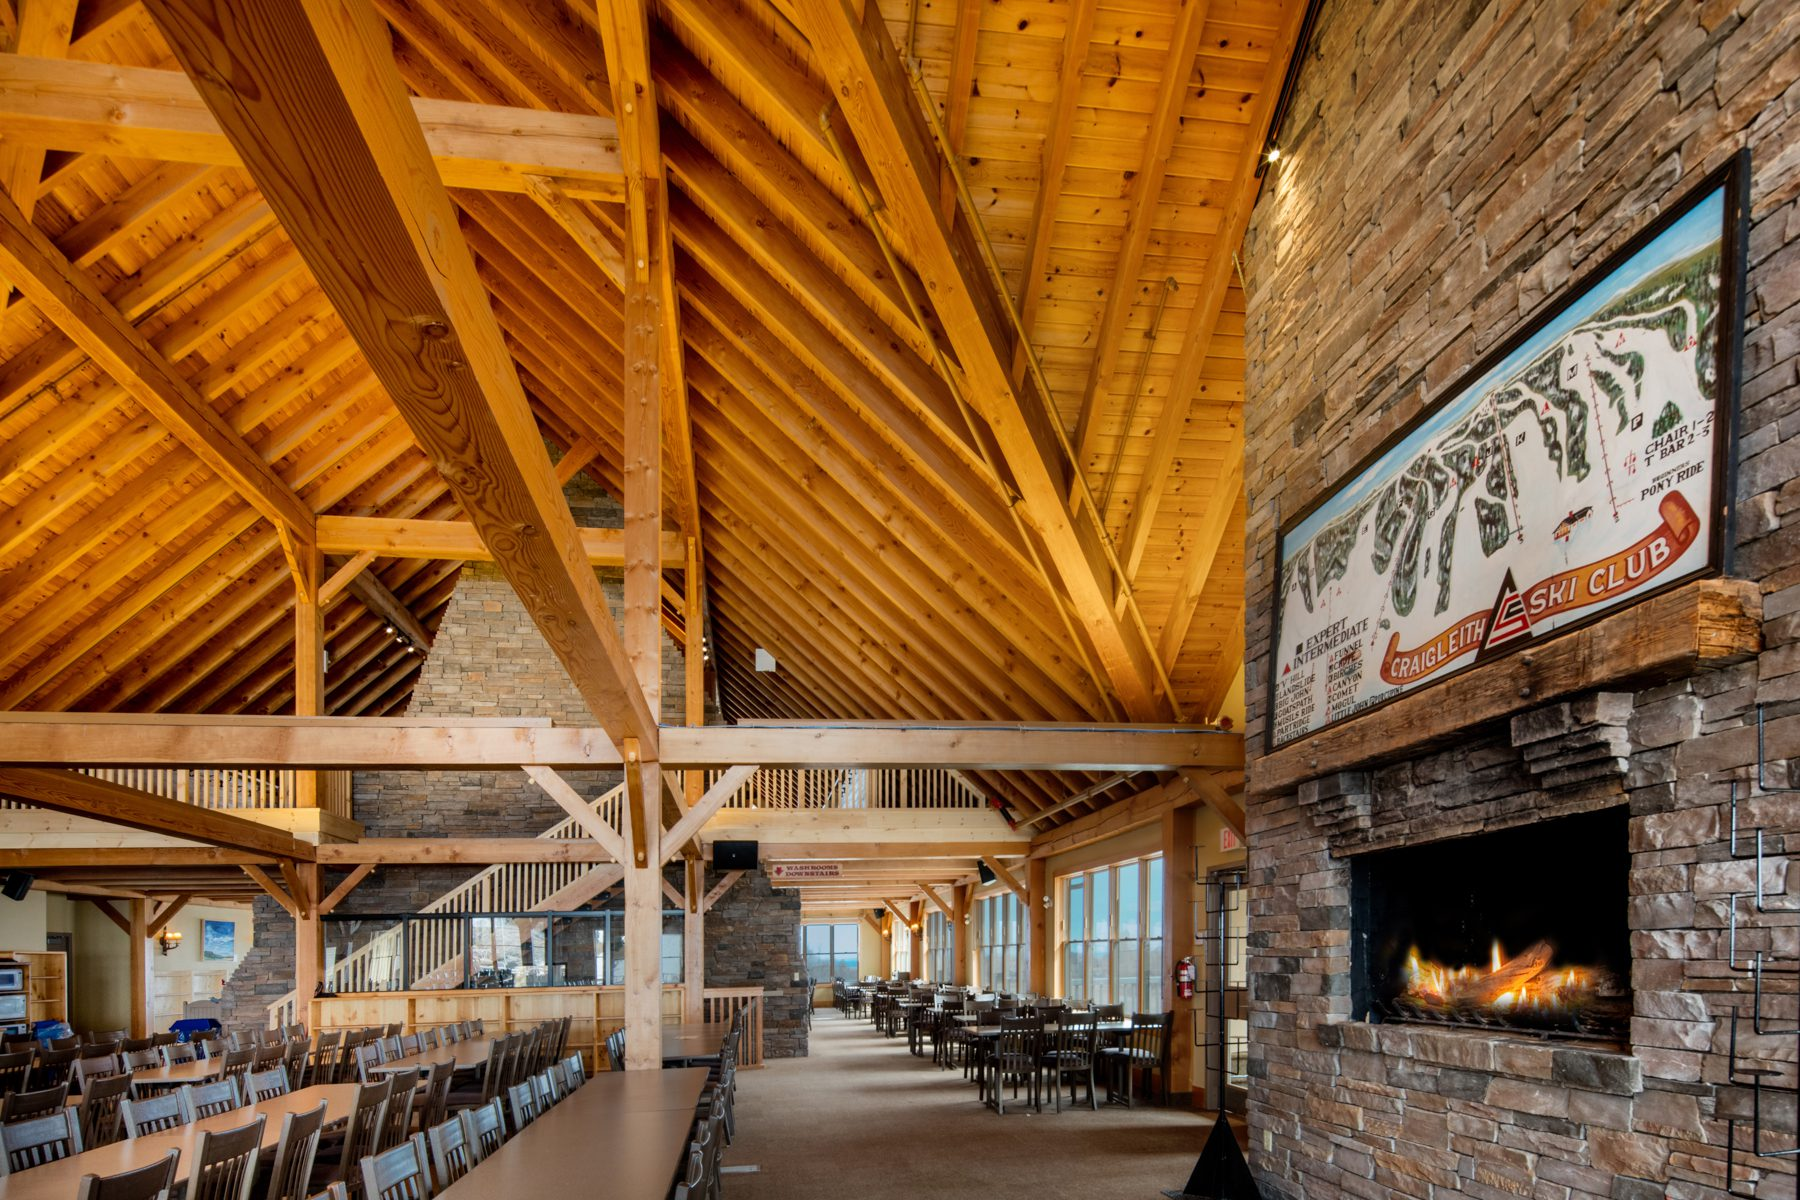 Normerica Timber Frame, Commercial Project, Craigleith Ski Club, Ski Resort, Collingwood, Ontario, Interior, Fireplace